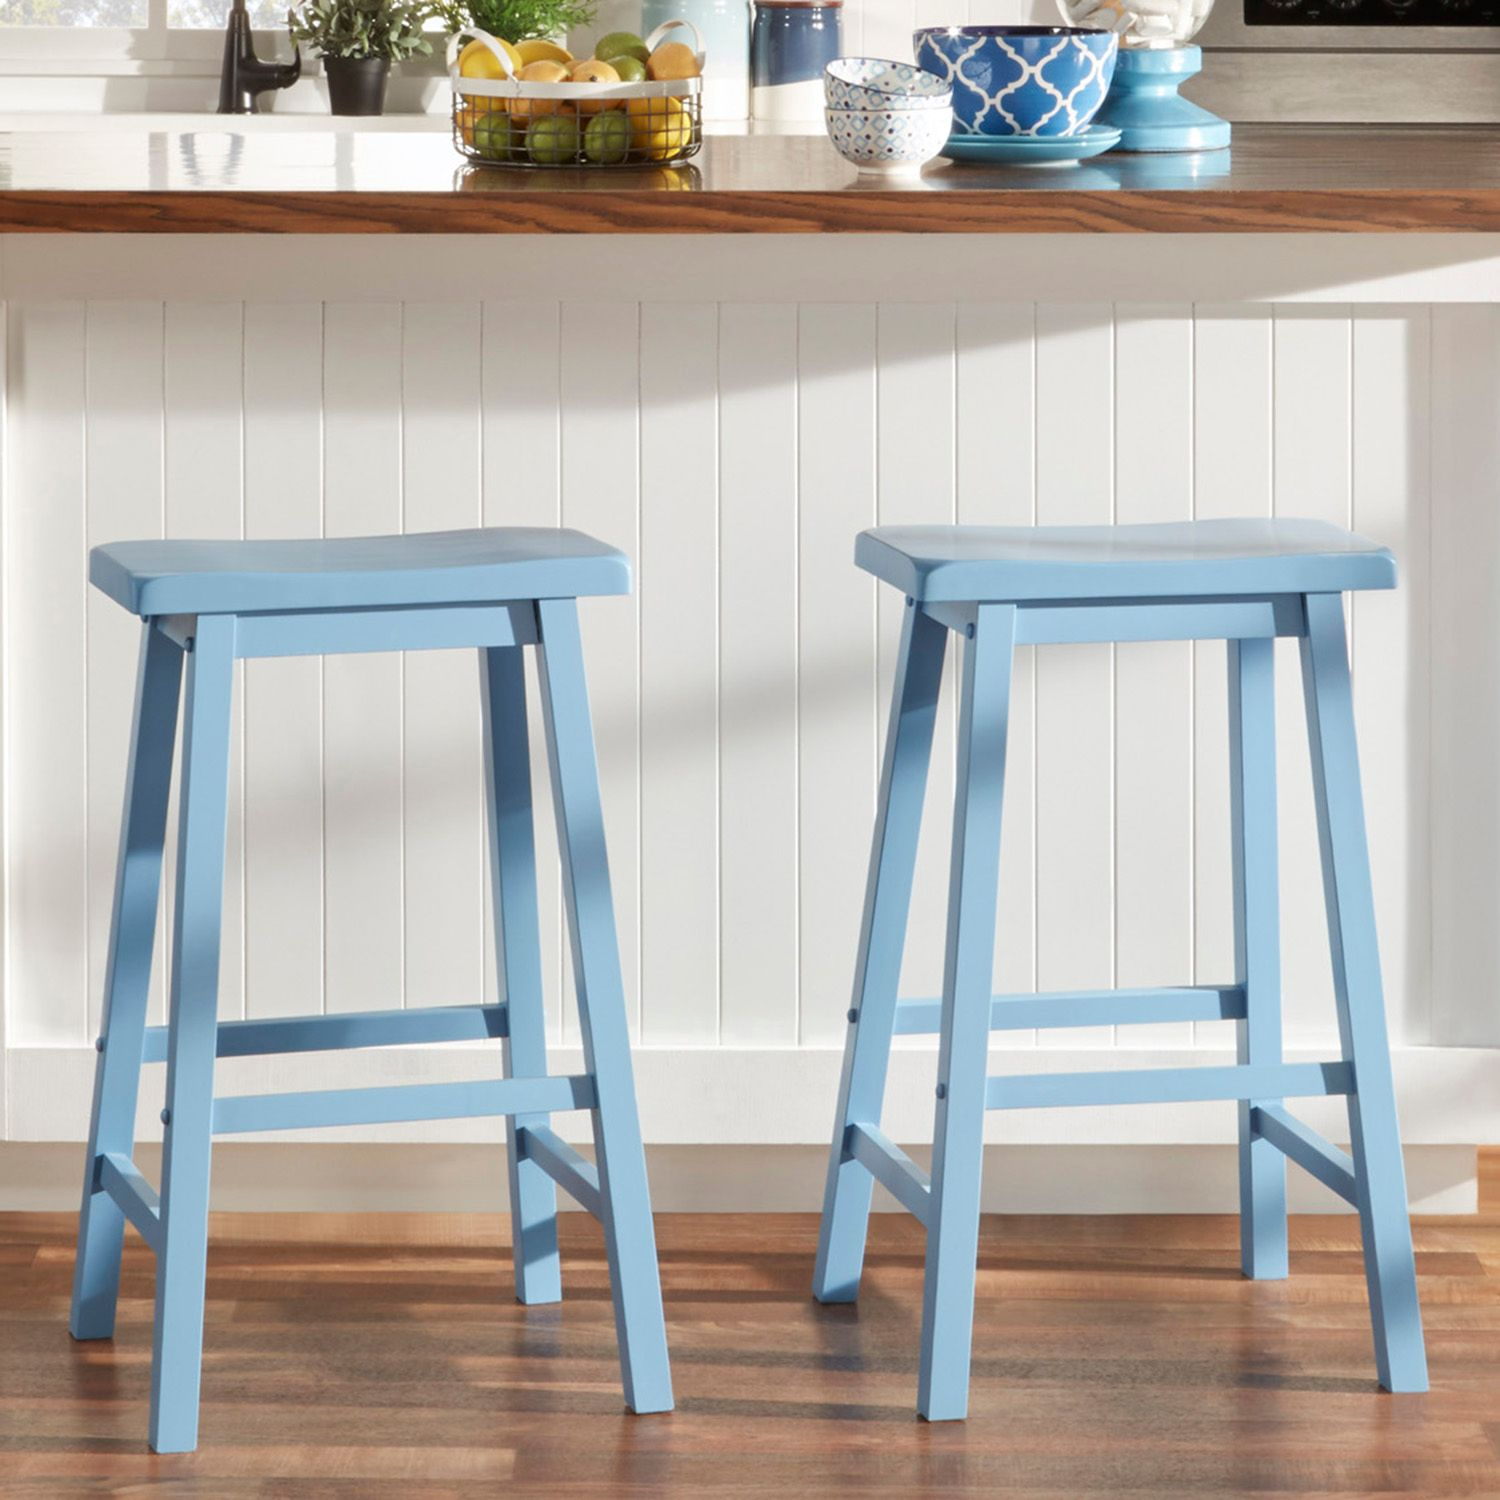 Saddle Bar Stools Add A Touch Of Ranch To Your Bar With  : 2224875Bluewidu003d1000u0026heiu003d1000u0026opsharpenu003d1 from hide-ip.us size 1500 x 1500 jpeg 119kB